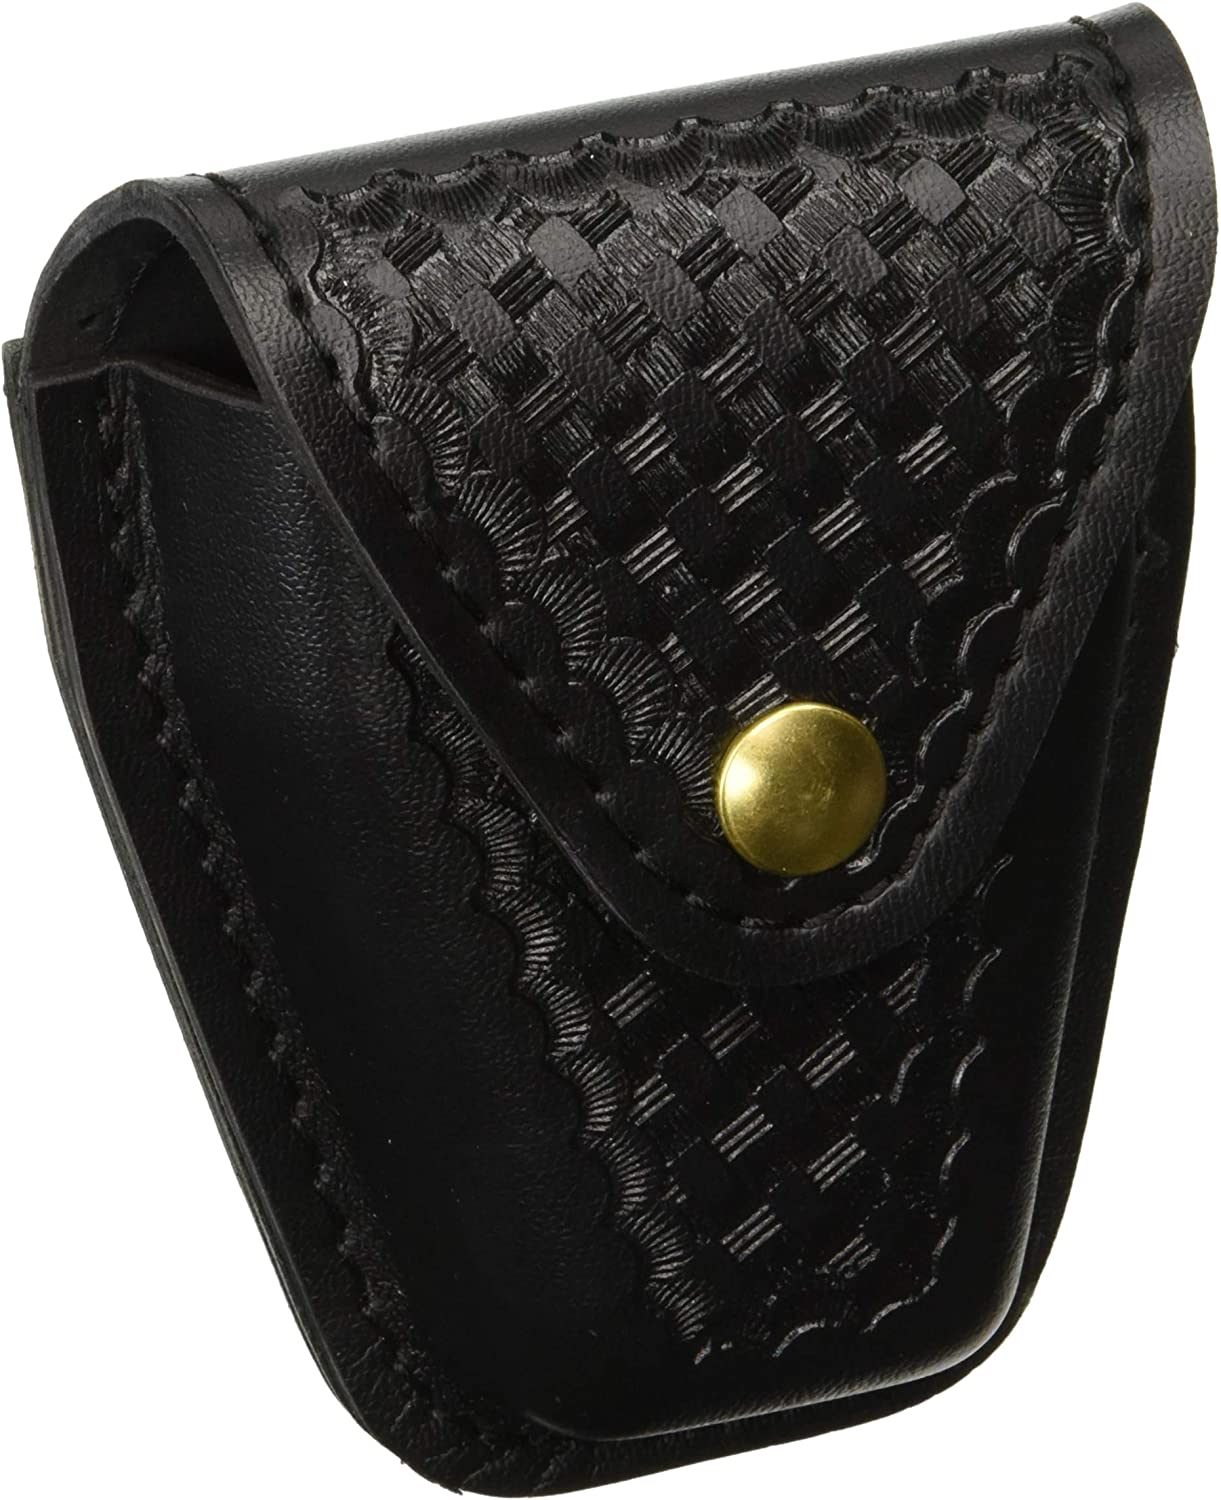 Safariland Duty Gear Brass Snap Handcuff Case (Basketweave Black)